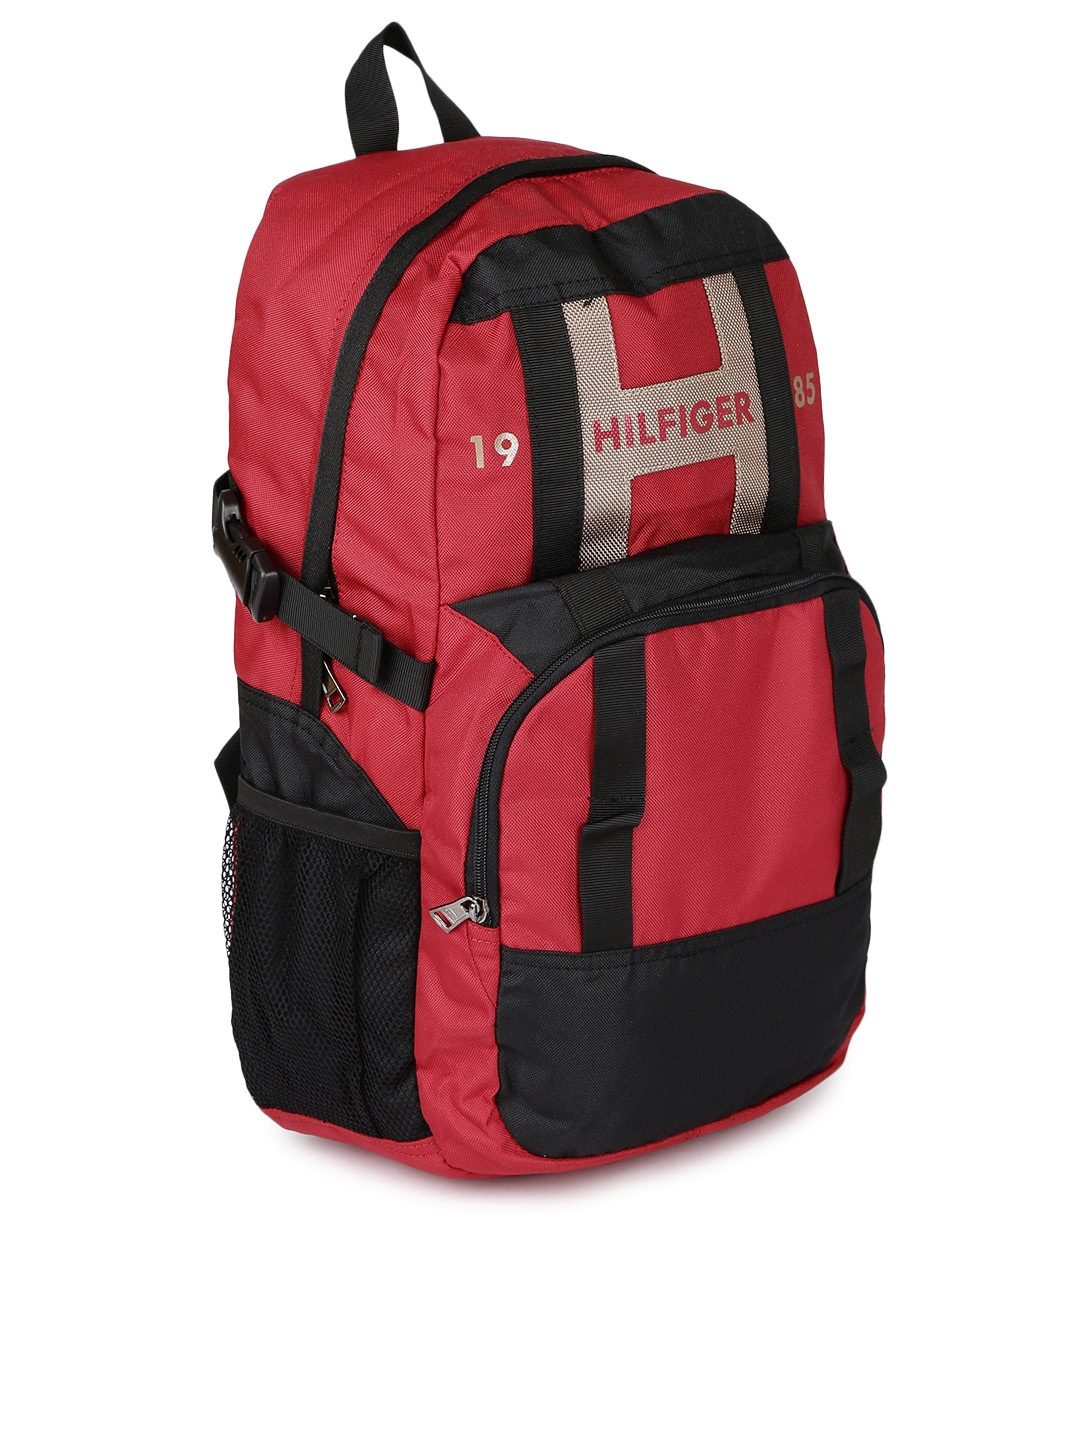 Tommy Hilfiger Unisex Red   Black Backpack